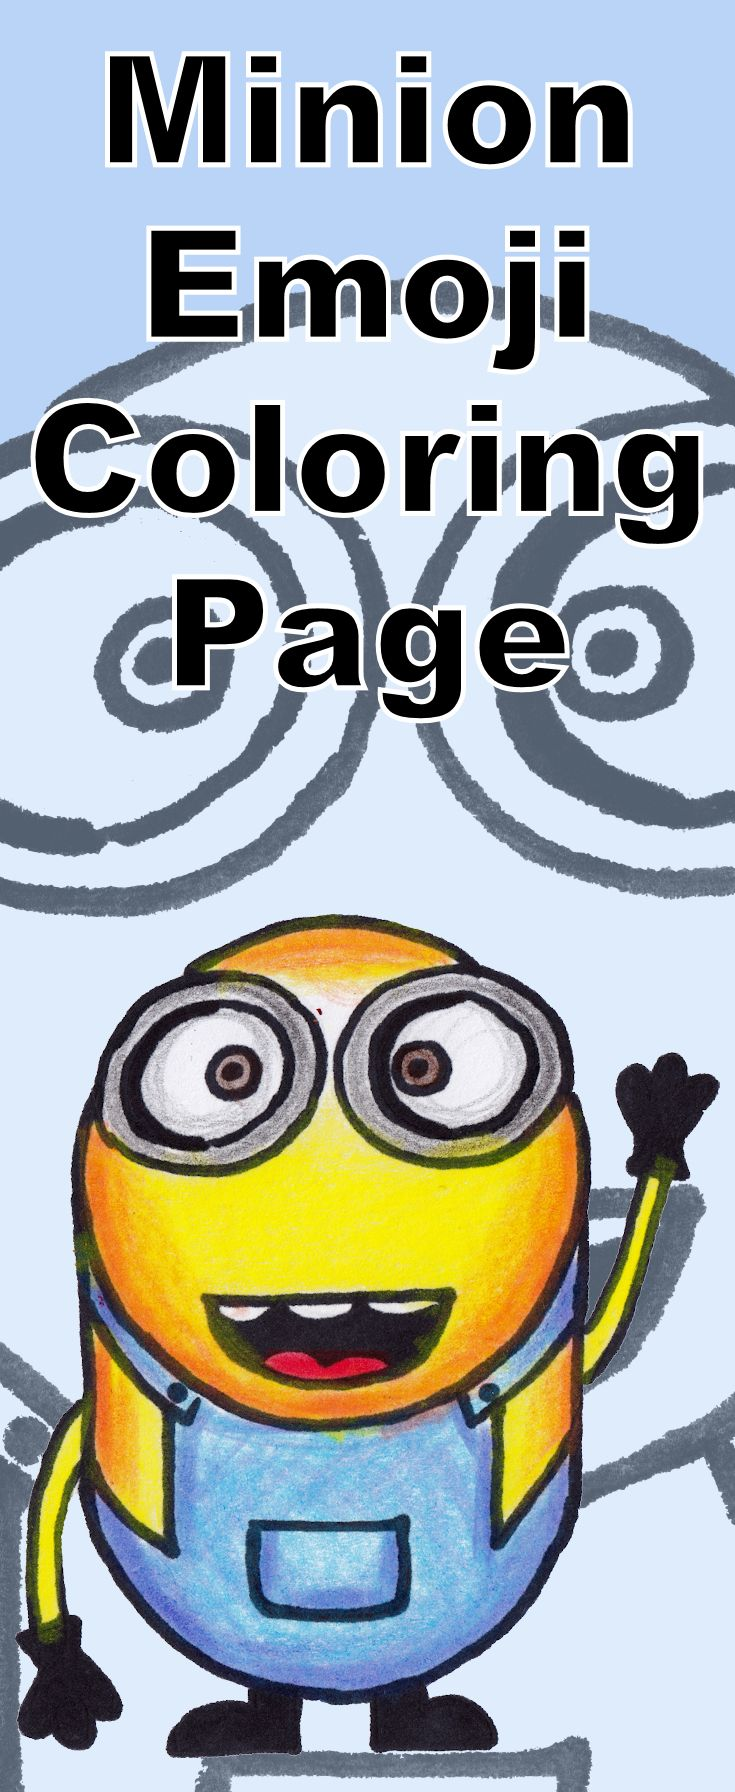 Free Minion emoji coloring page - includes a drawing tutorial video